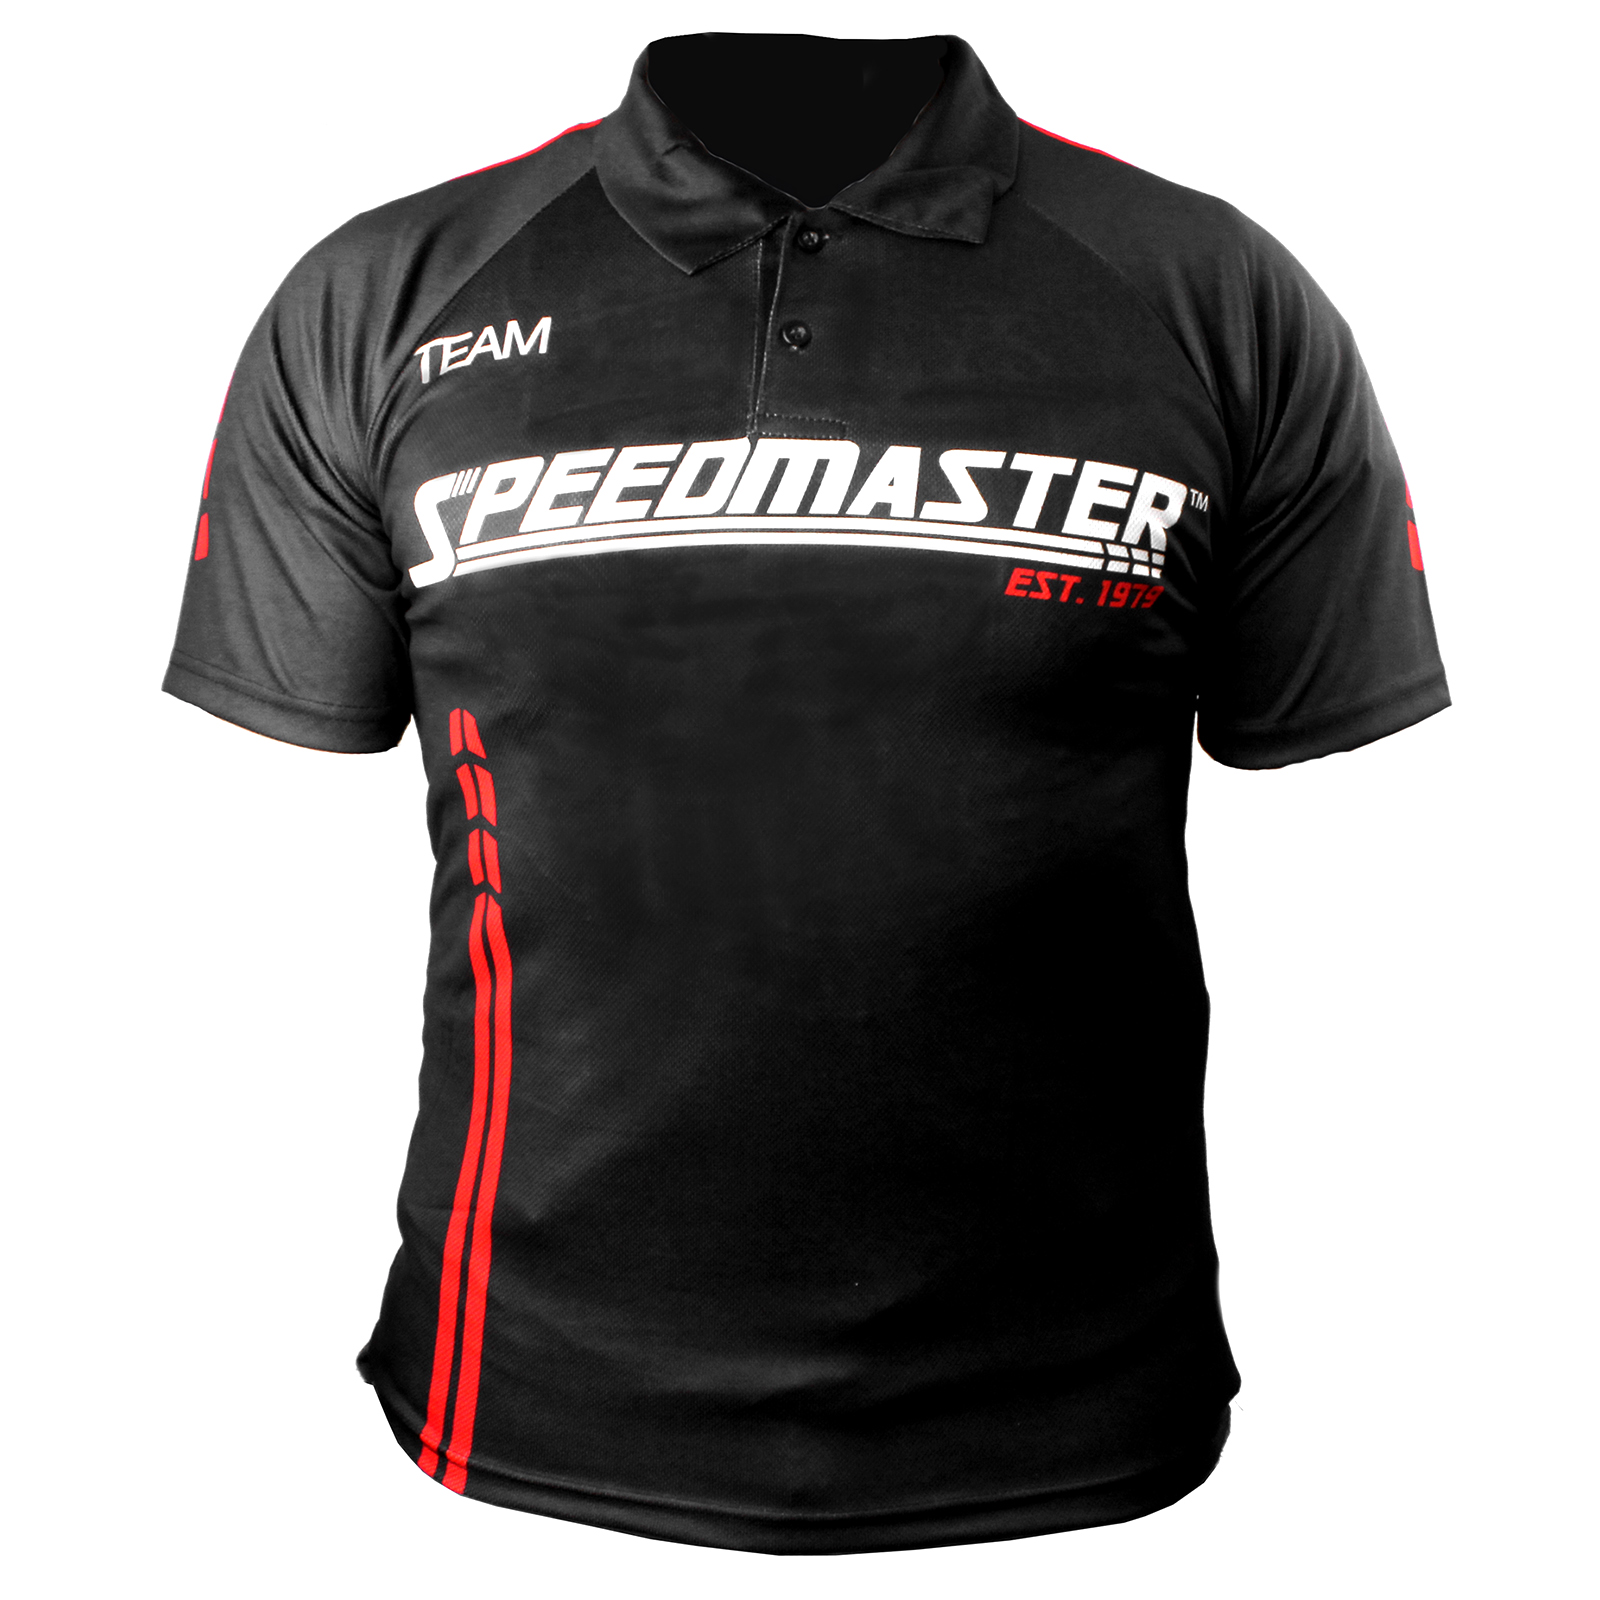 Speedmaster Team Jersey / Polo Shirt - X Large XL